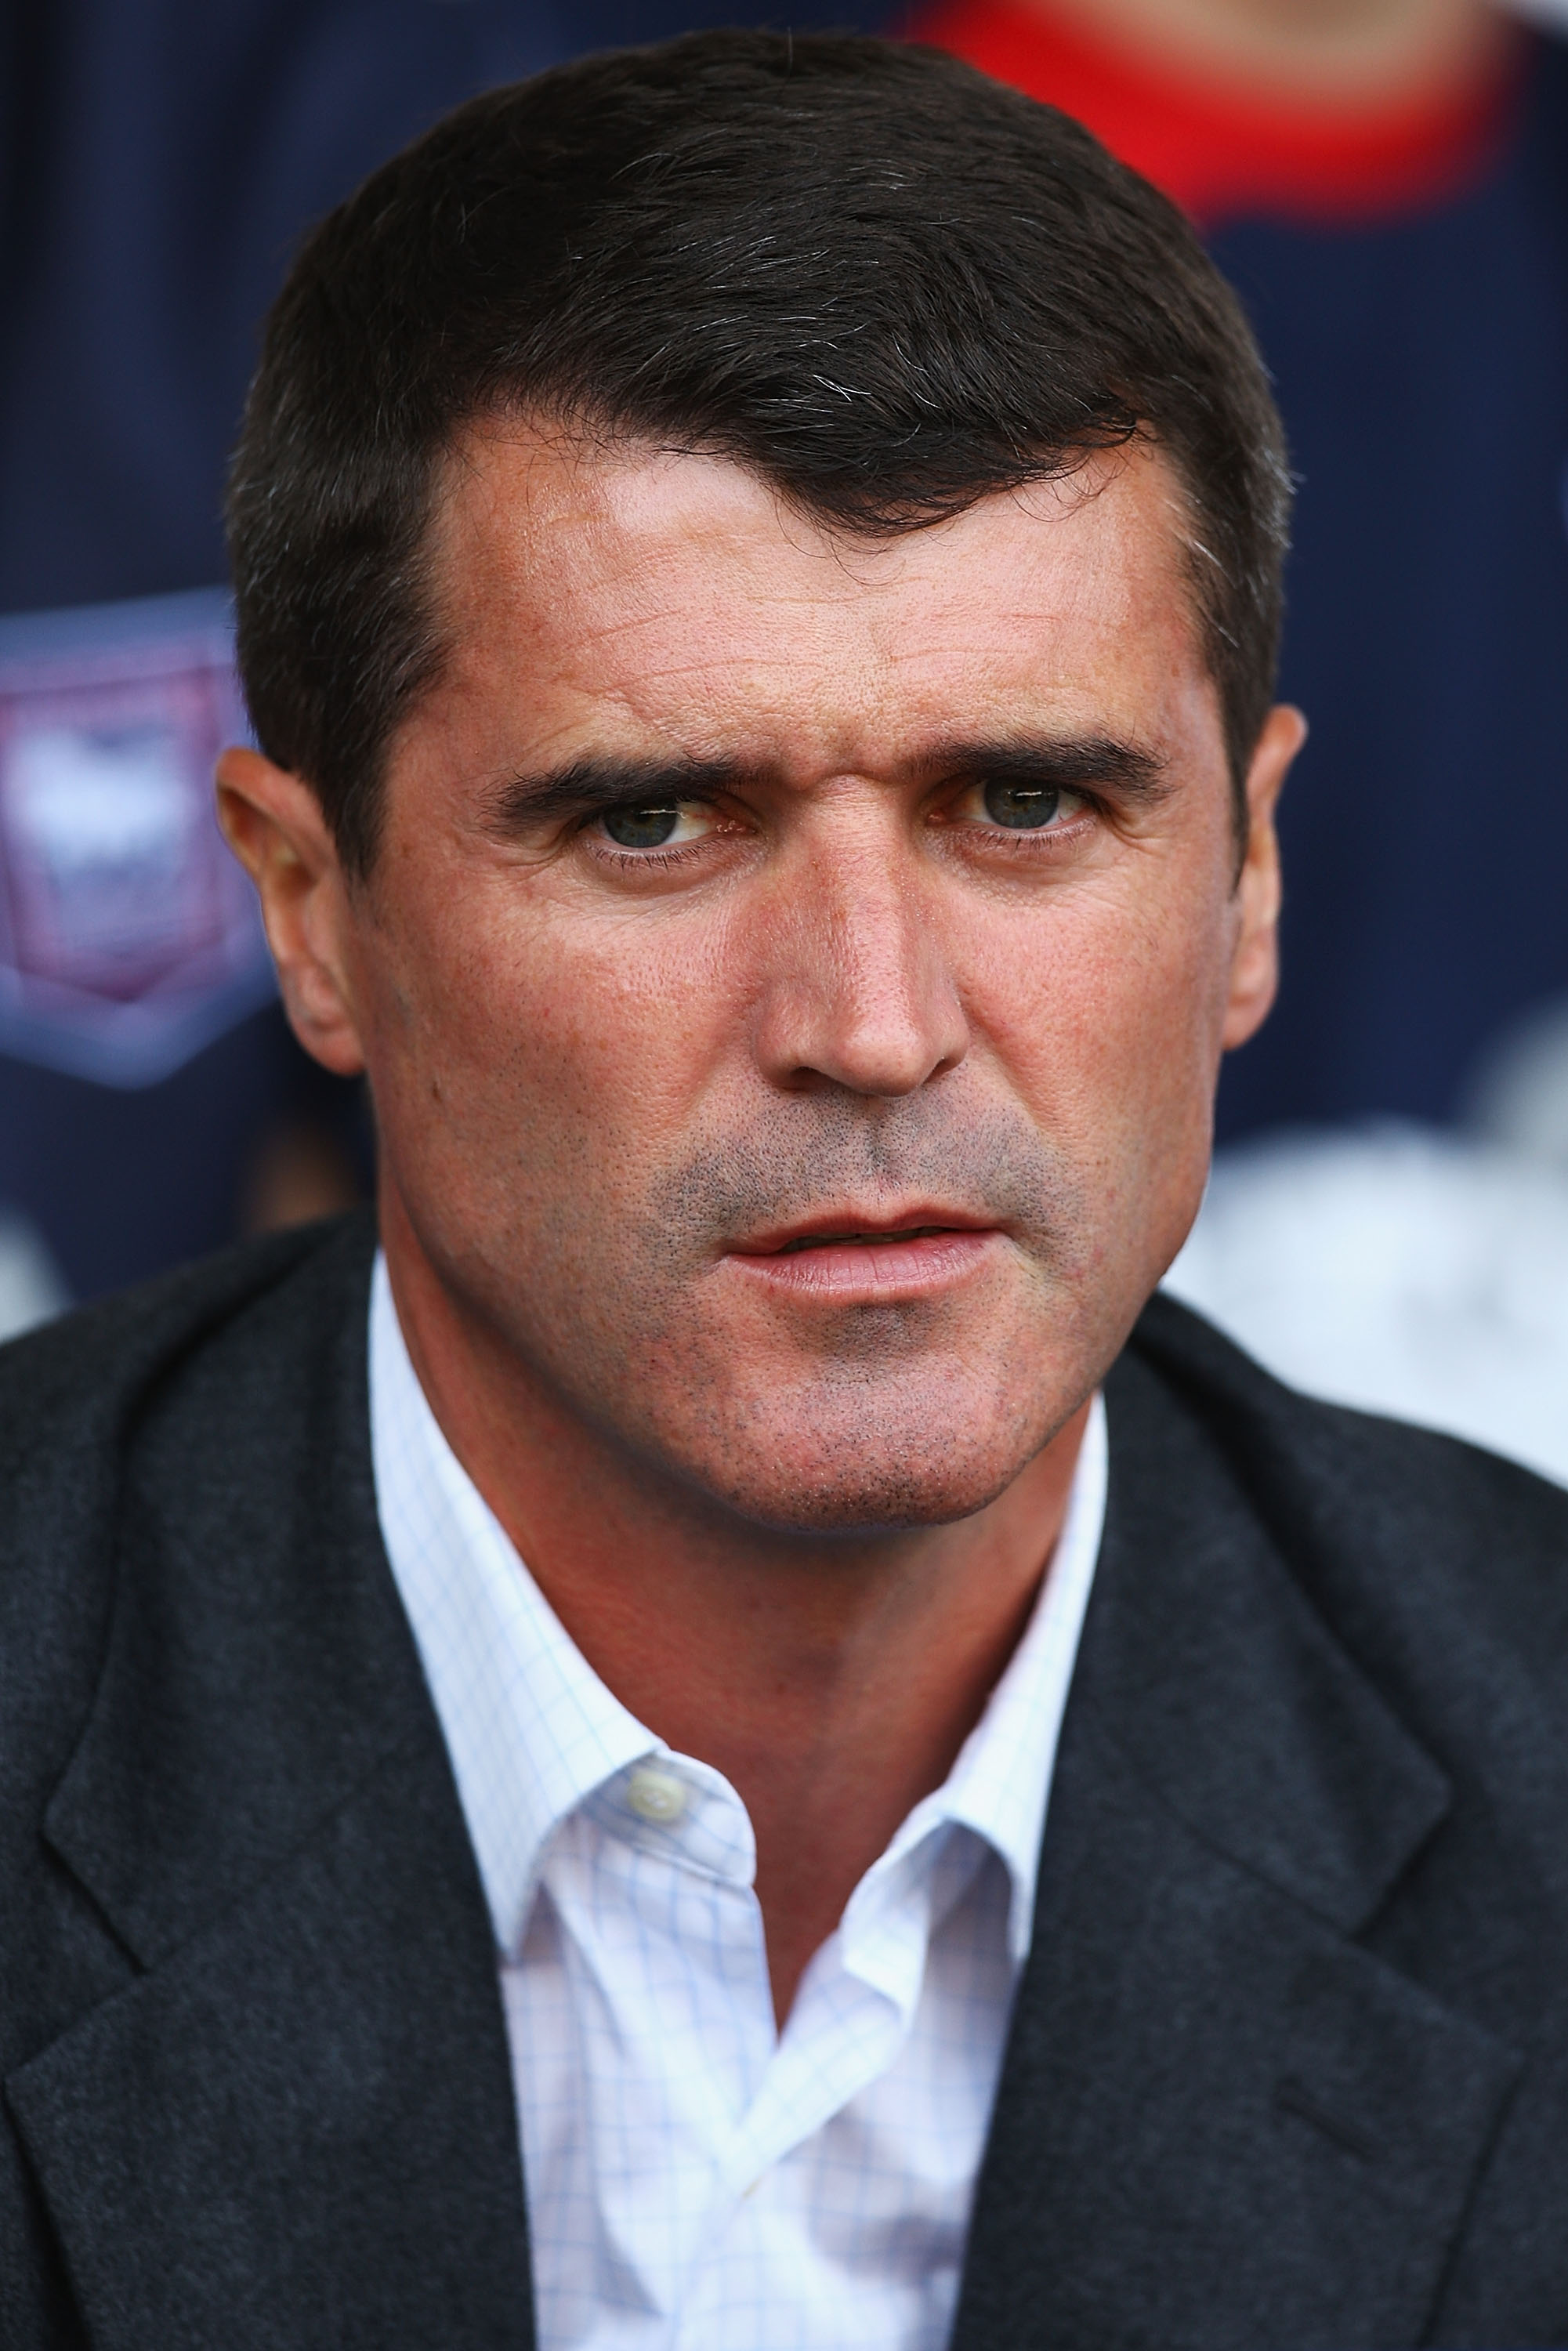 WEST BROMWICH, ENGLAND - AUGUST 22:  Roy Keane, manager of Ipswich Town looks on during the Coca-Cola Championship match between West Bromwich Albion and Ipswich Town at The Hawthorns on August 22, 2009 in West Bromwich, England.  (Photo by Matthew Lewis/